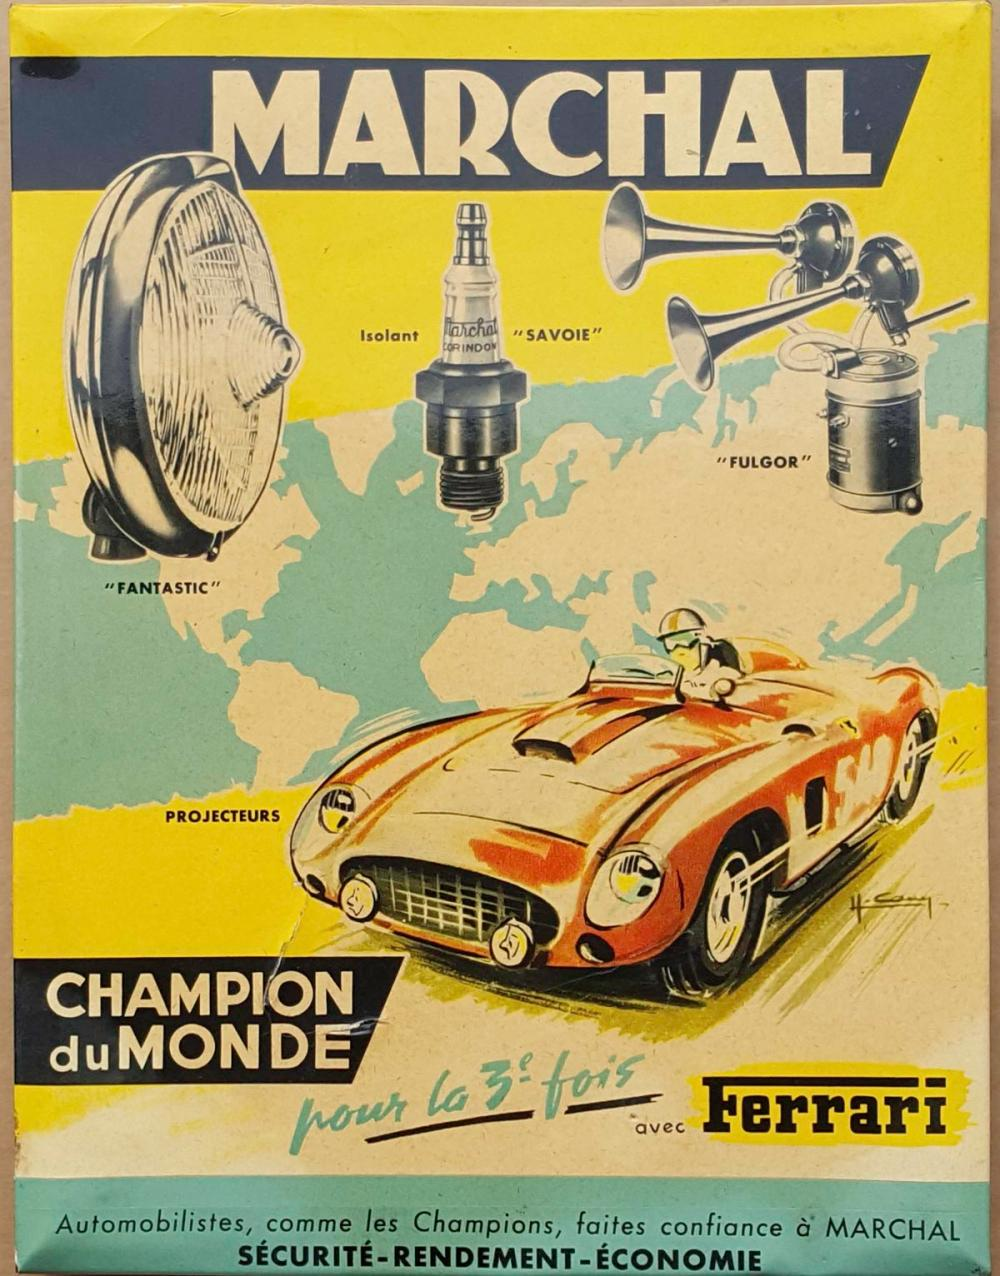 Marchal Ferrari accessory counter sign